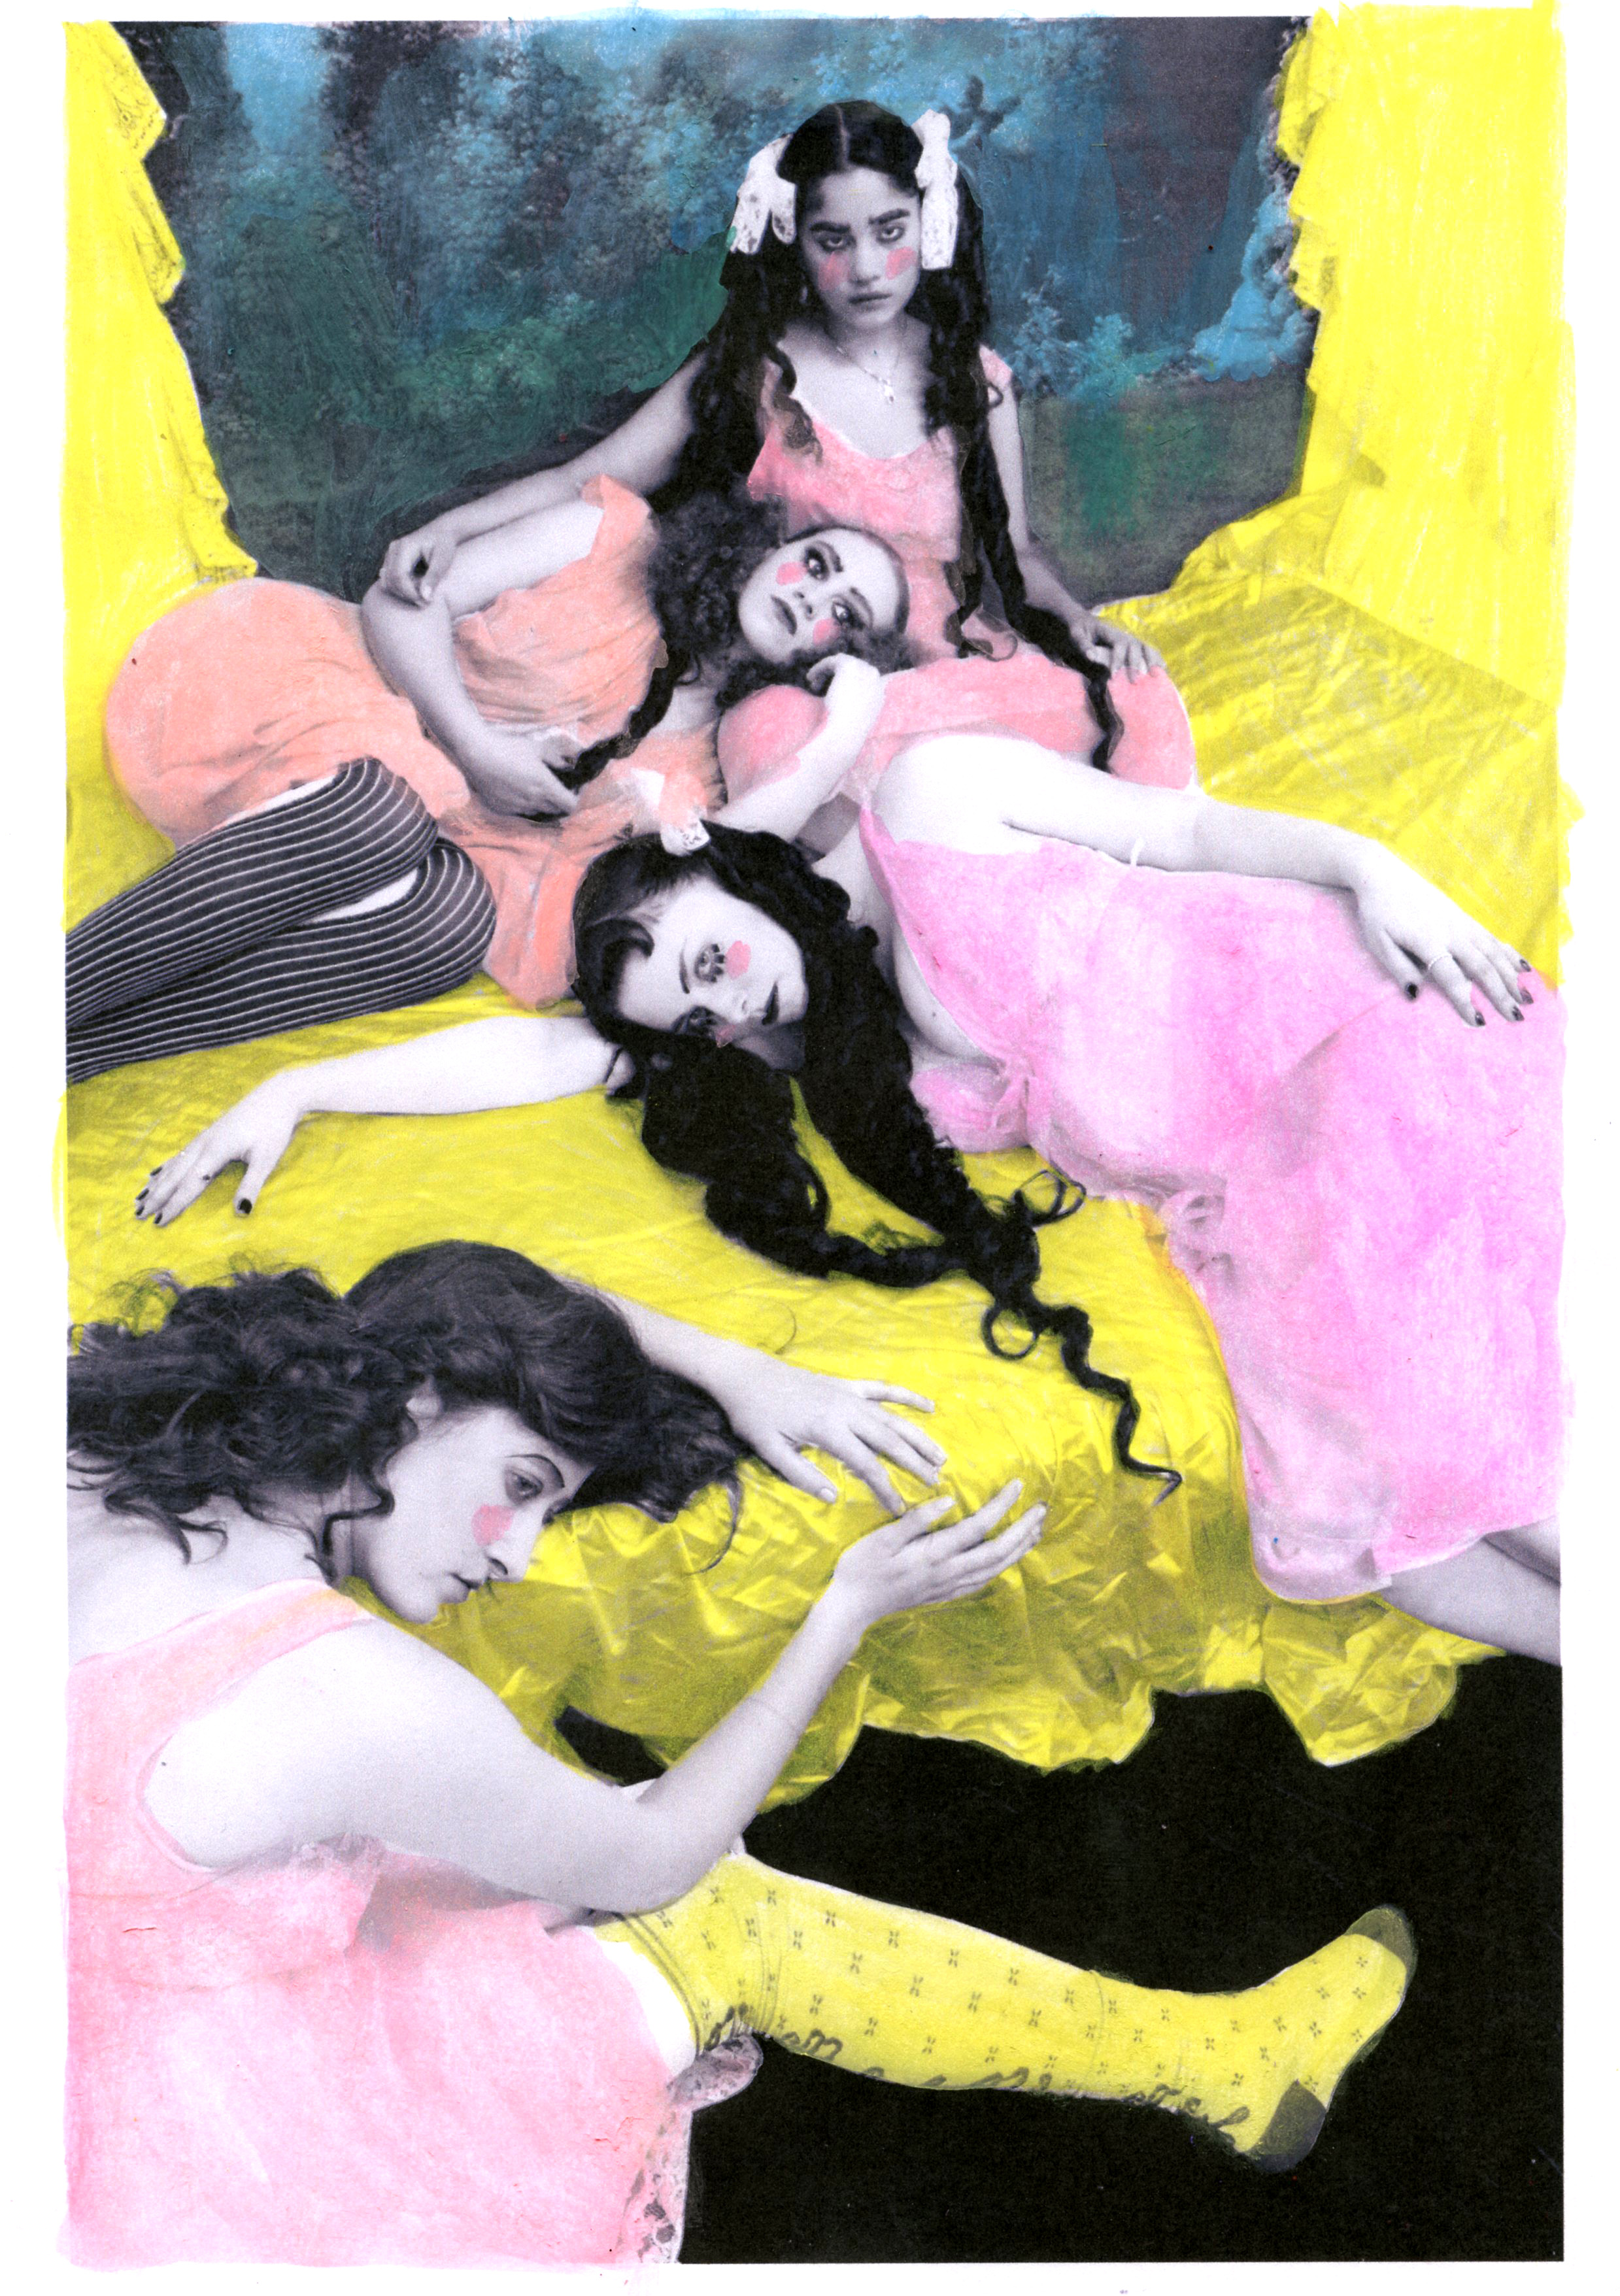 'Hysteria', by Rachel Hodgson for Polyester Daughters of Darkness